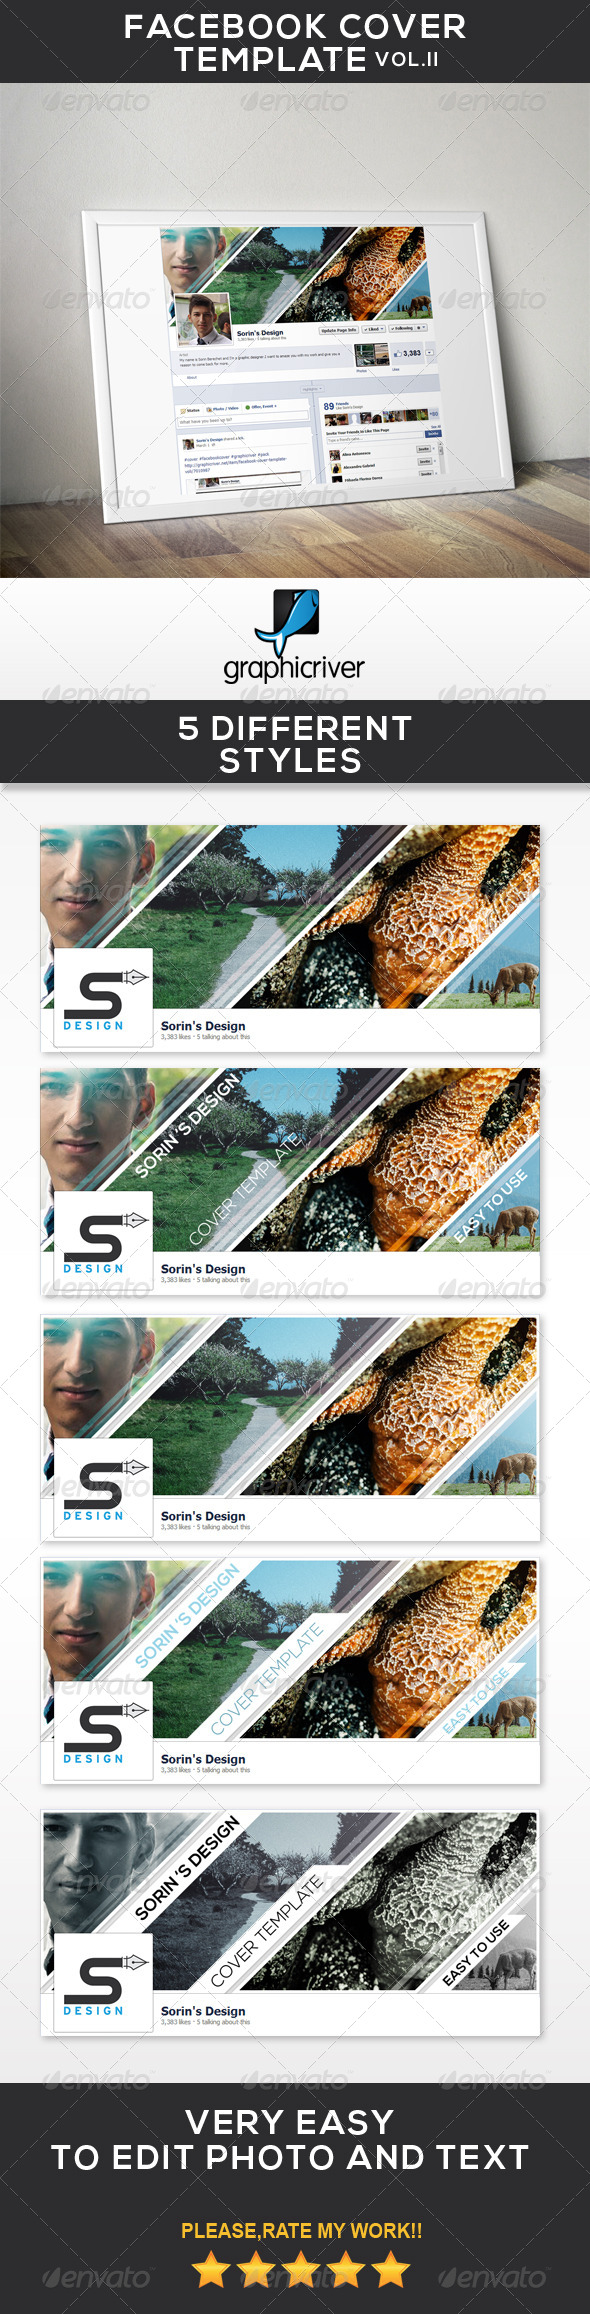 GraphicRiver Facebook Cover Template Vol.II 7030333